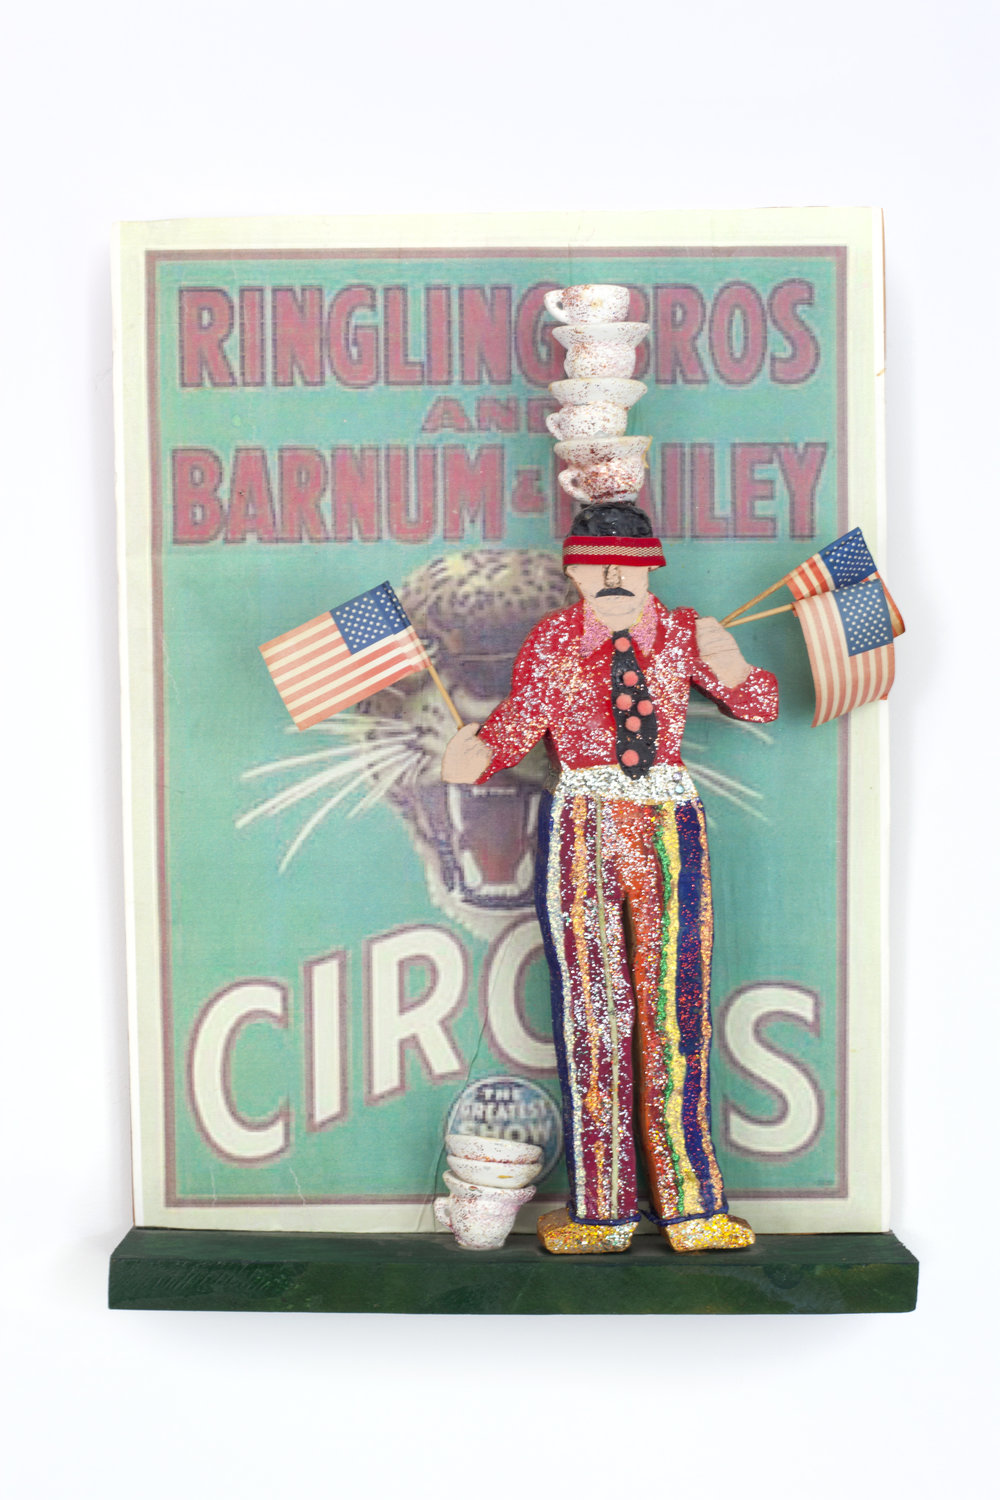 - Circus II (Teacup balancer)c. 2005Wood and mixed media15 ½ x 11 1/8 x 2 3/8 inches